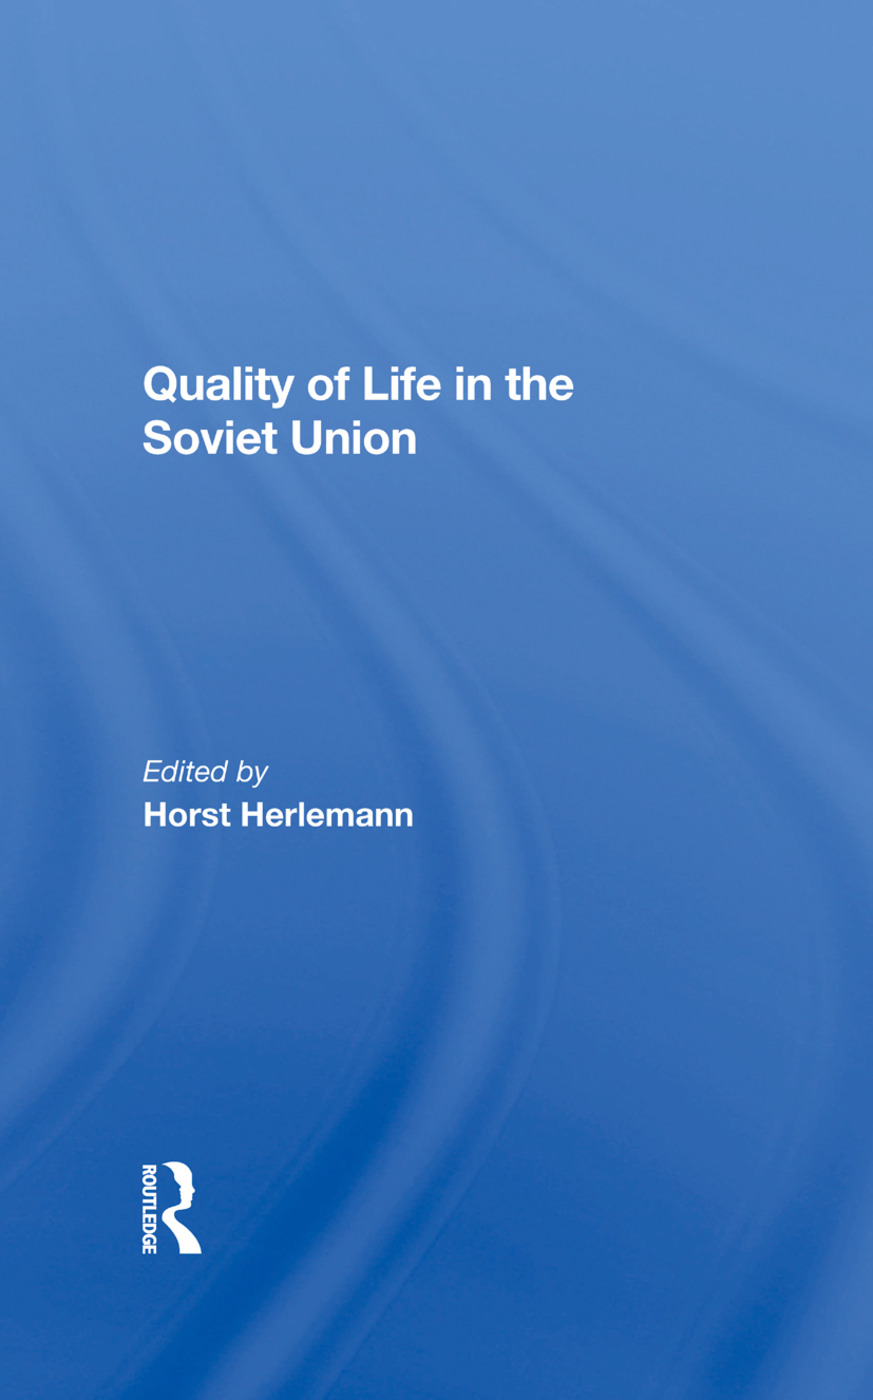 Quality of Life in the Soviet Union